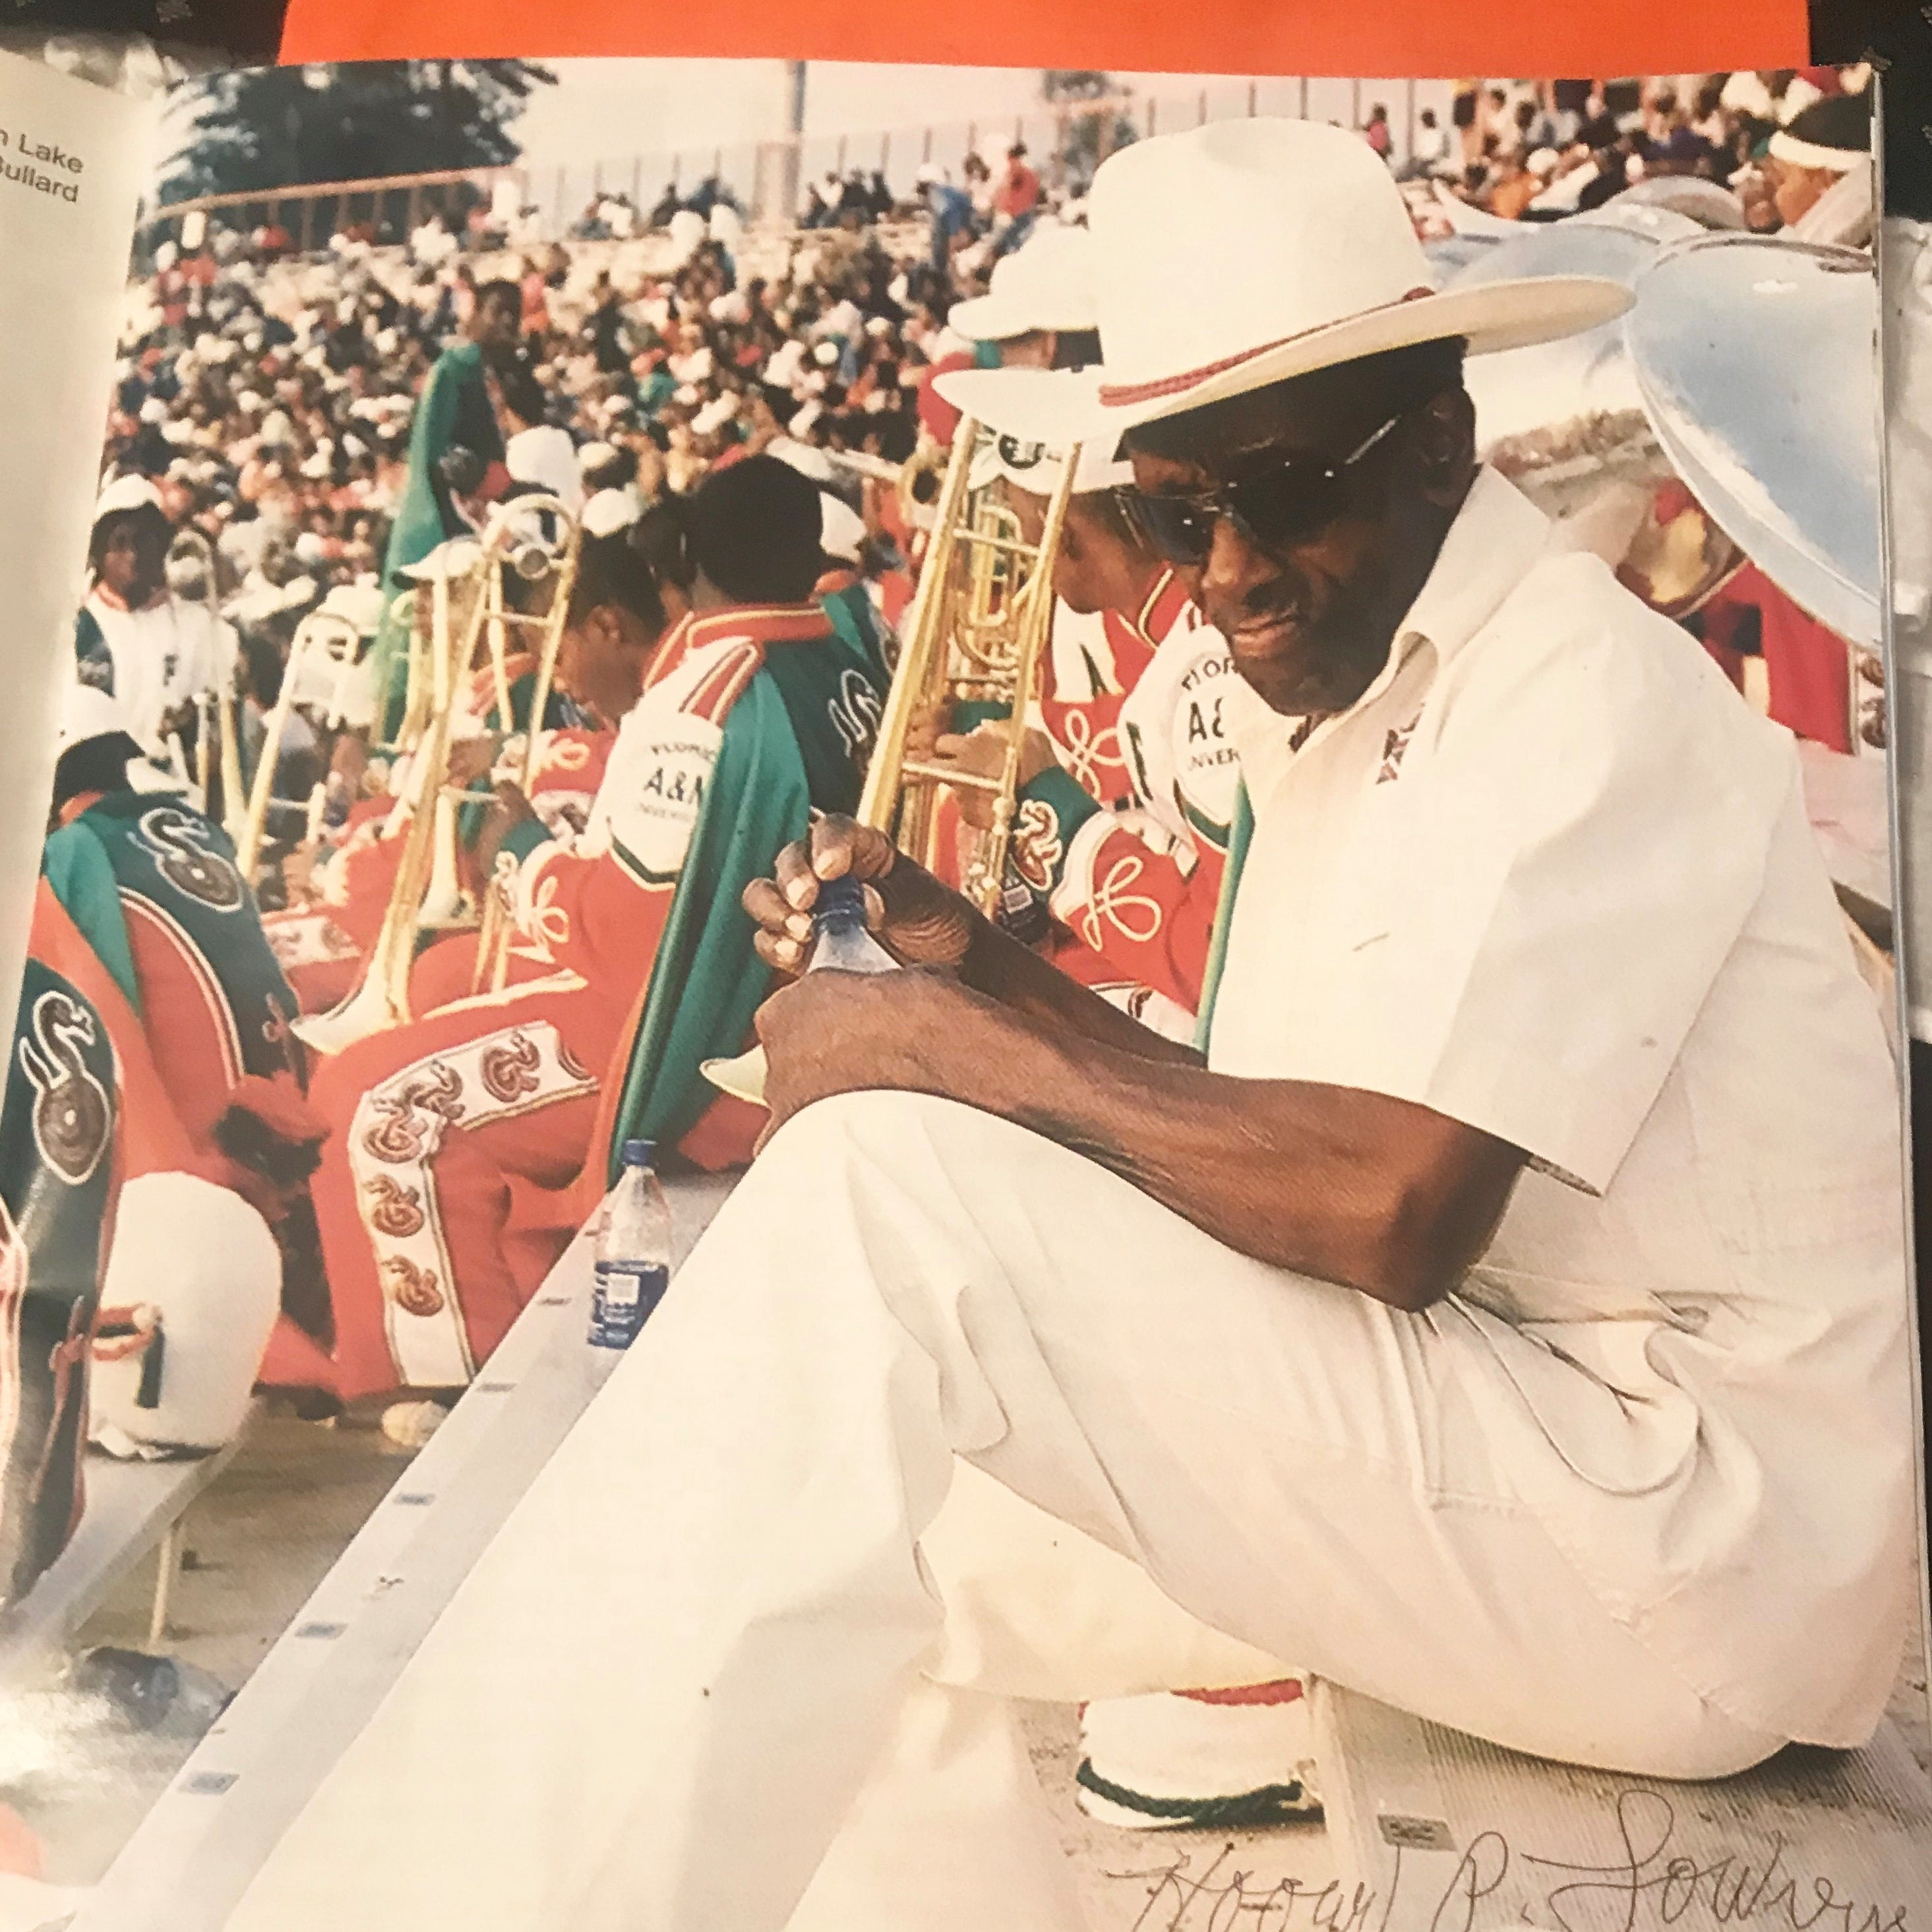 Hoover 'SoulTrain' Lawrence remembered for decades of service and passion for FAMU